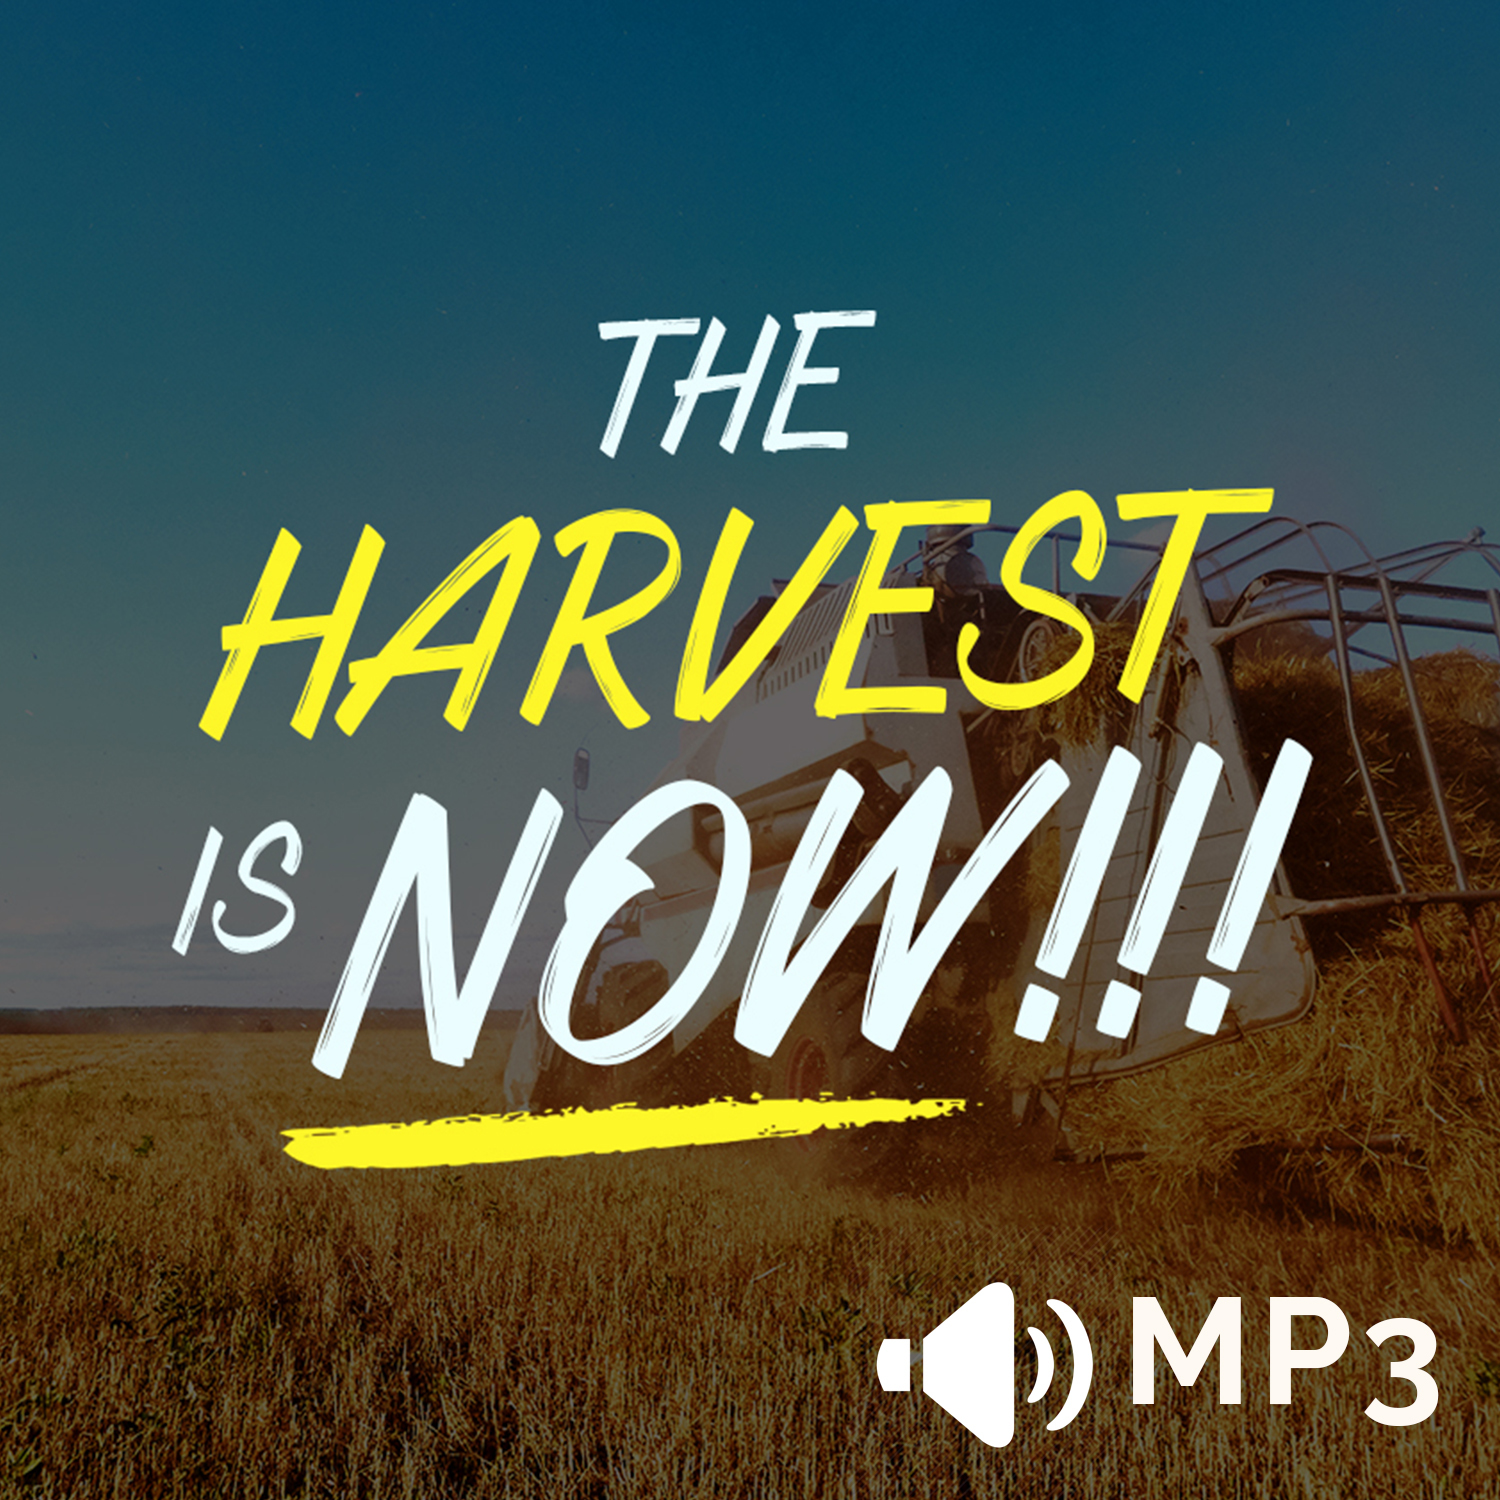 The Harvest is NOW!!! 00019